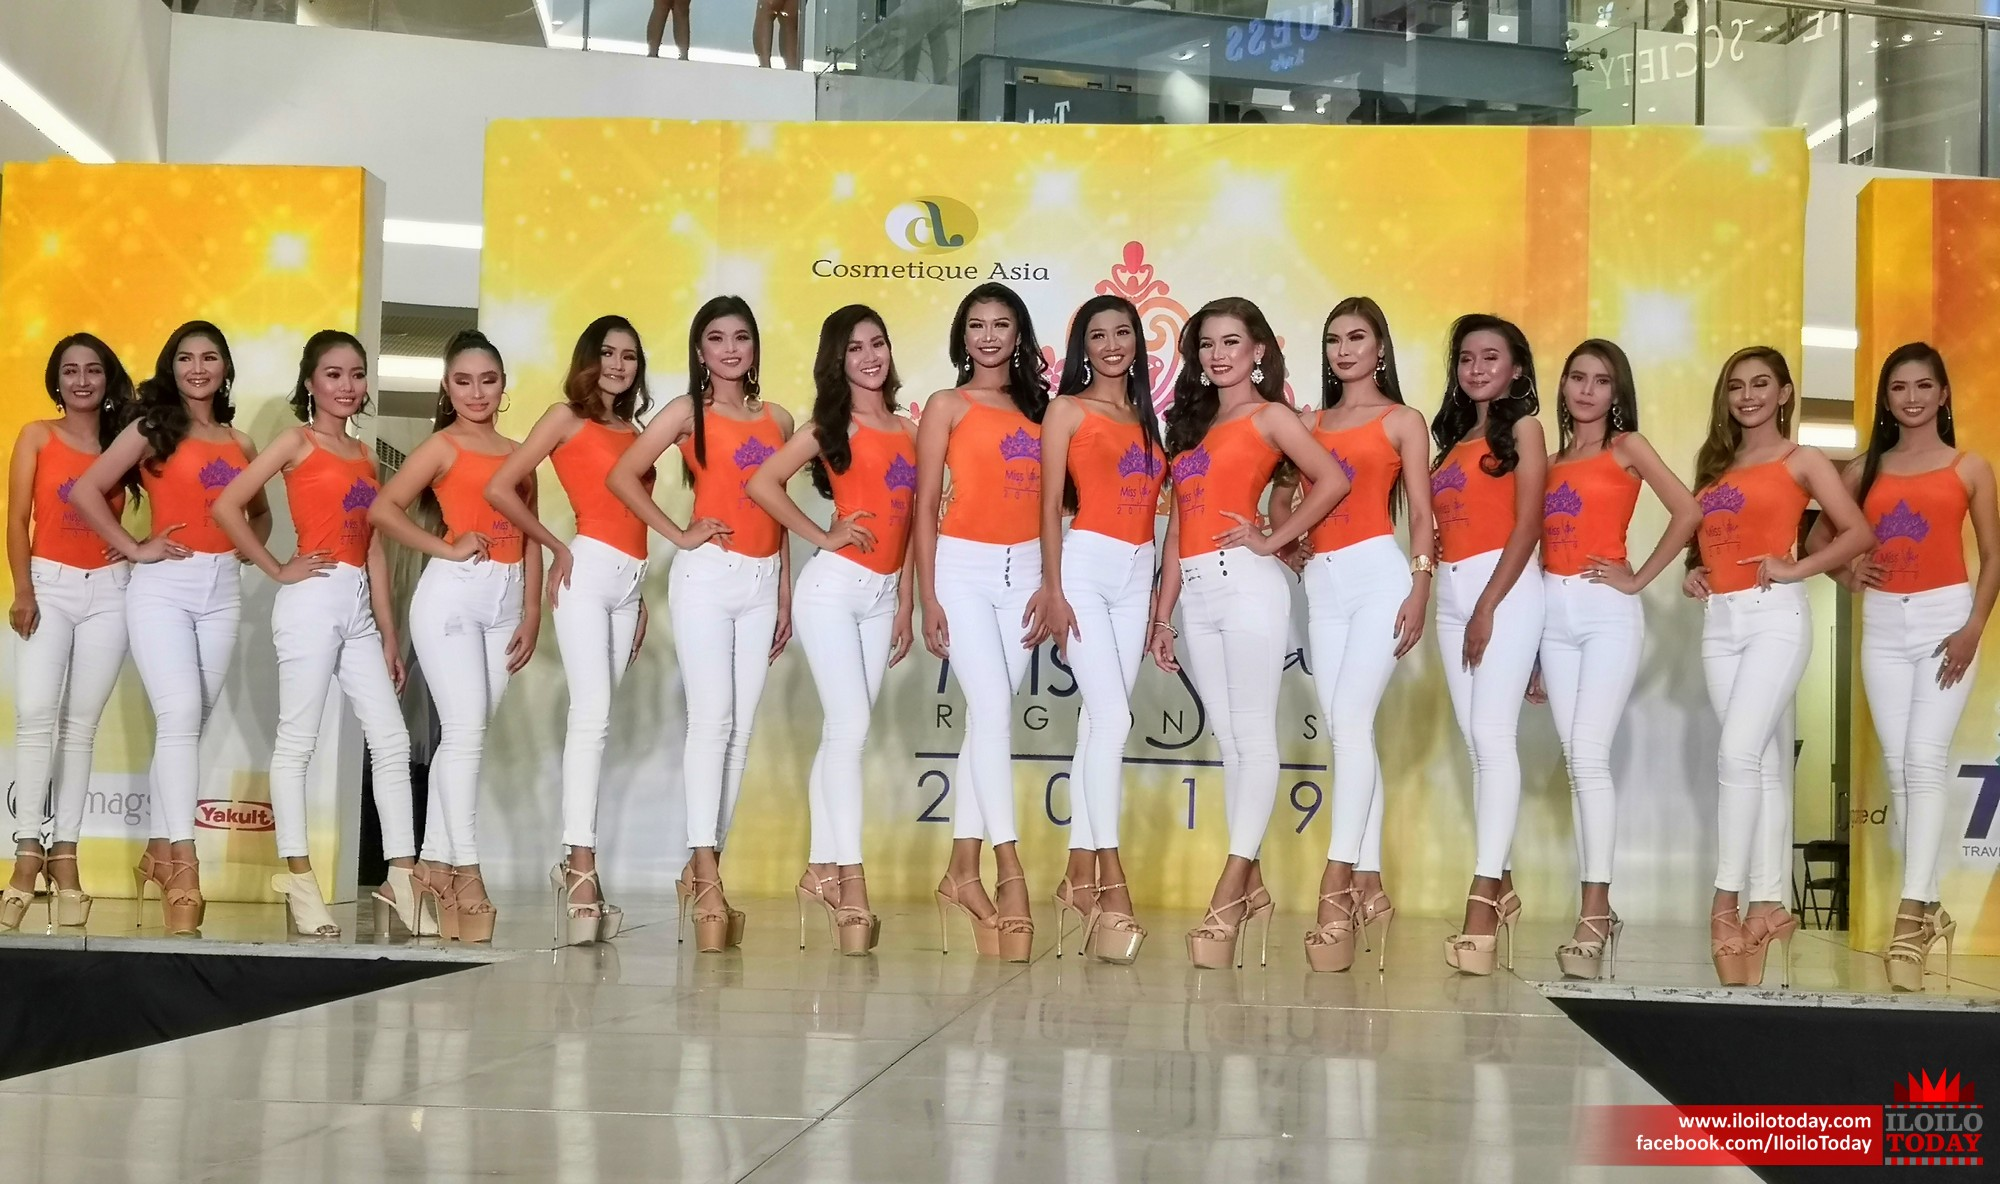 Cosmetique Asia presents Miss Silka Iloilo 2019 official candidates